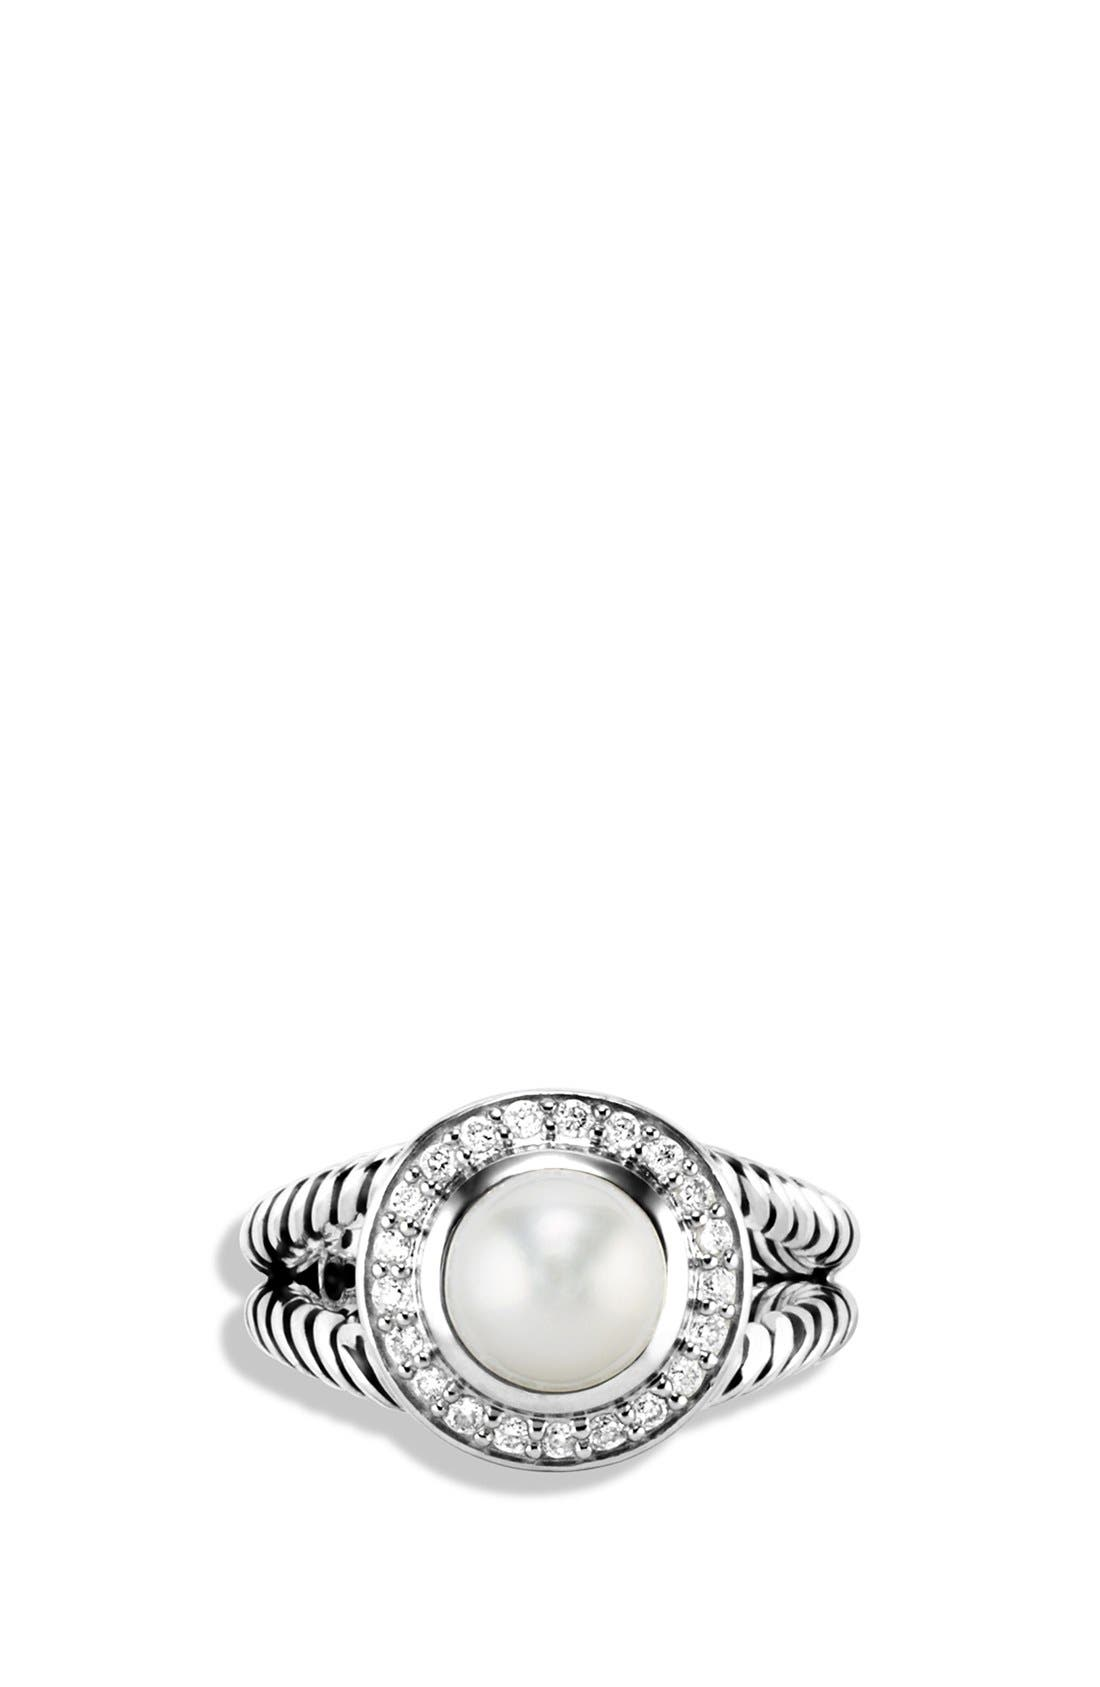 Alternate Image 3  - David Yurman 'Petite Cerise' Ring with Pearl and Diamonds